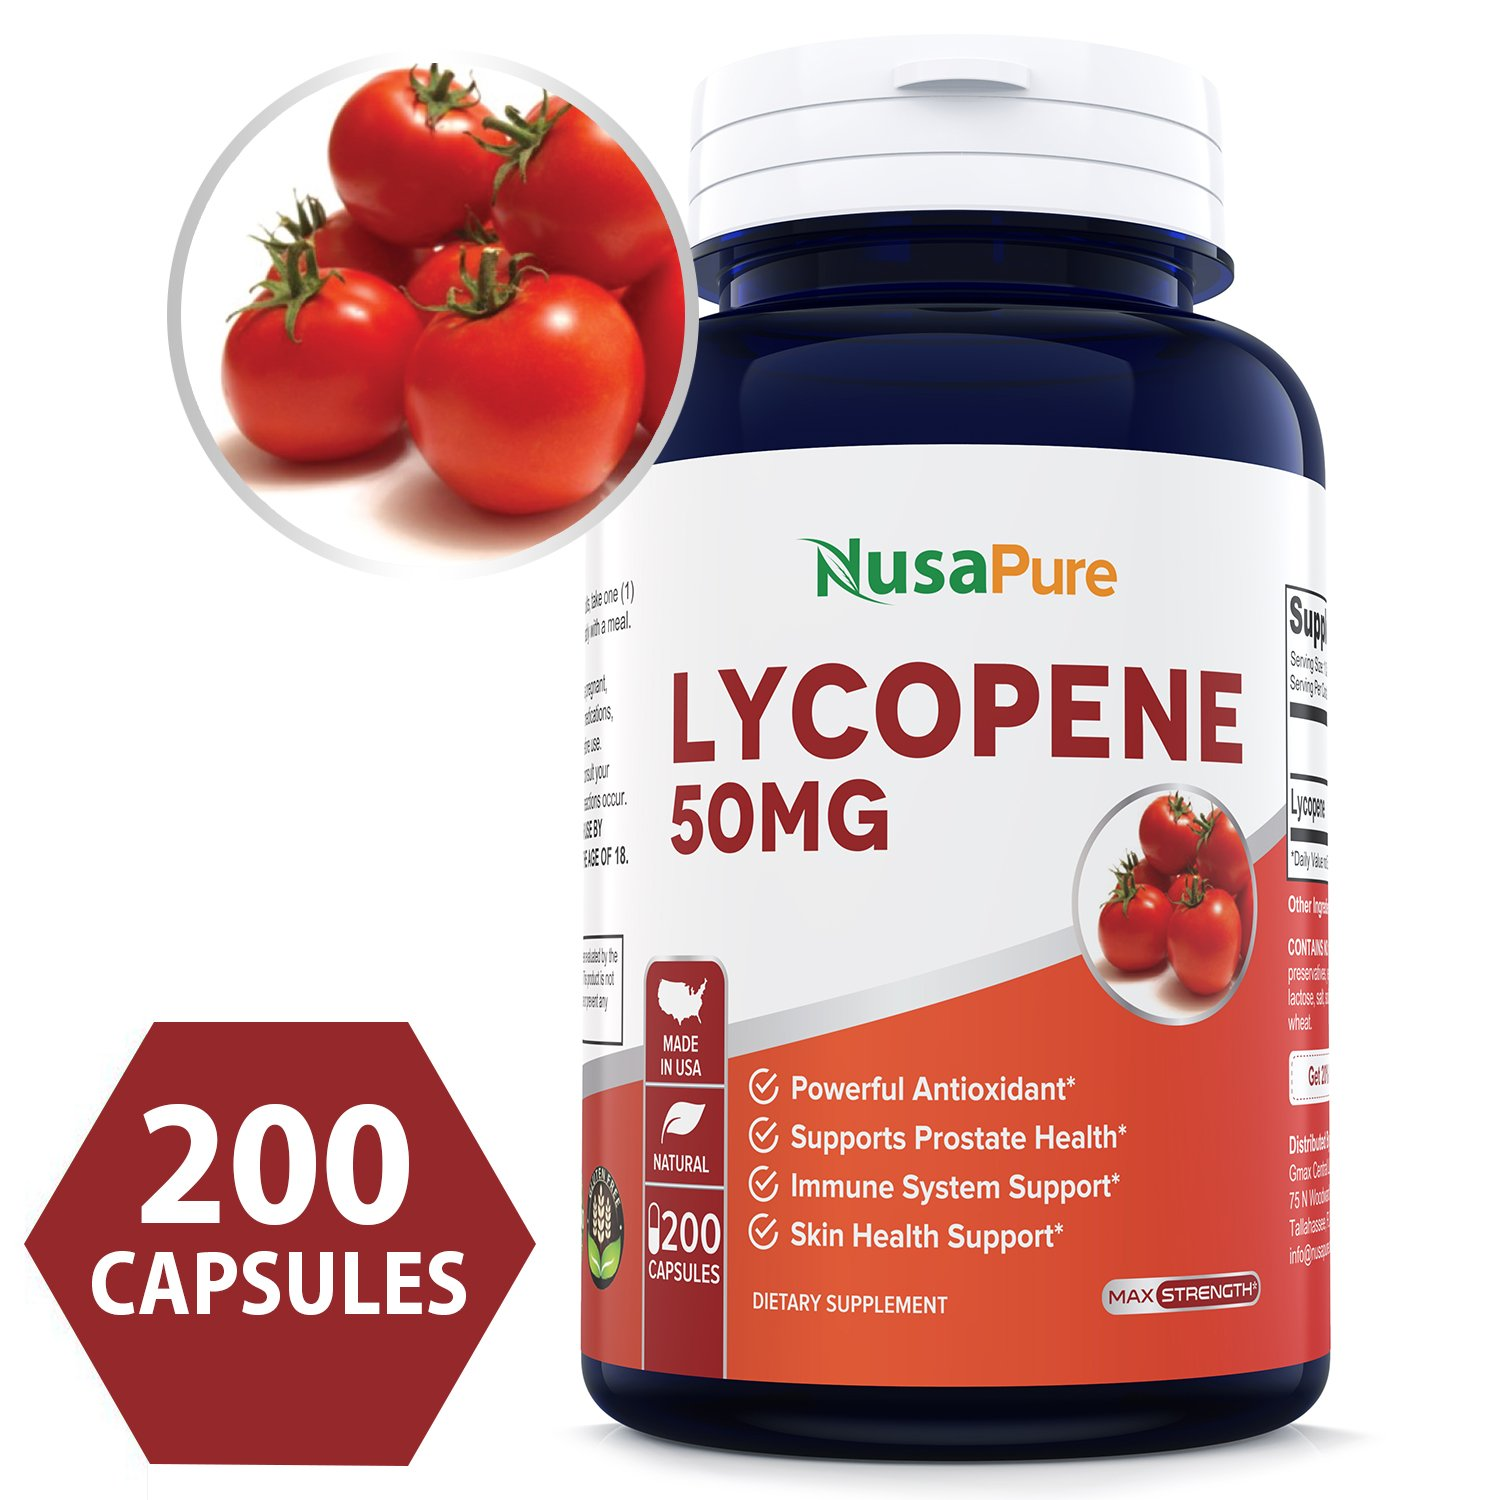 Lycopene 50MG 200 Capsules (Non-GMO & Gluten Free) Antioxidant Natural Tomato Great for Prostate Health, Immune System Support, Heart Health, Eyesight Support by NusaPure